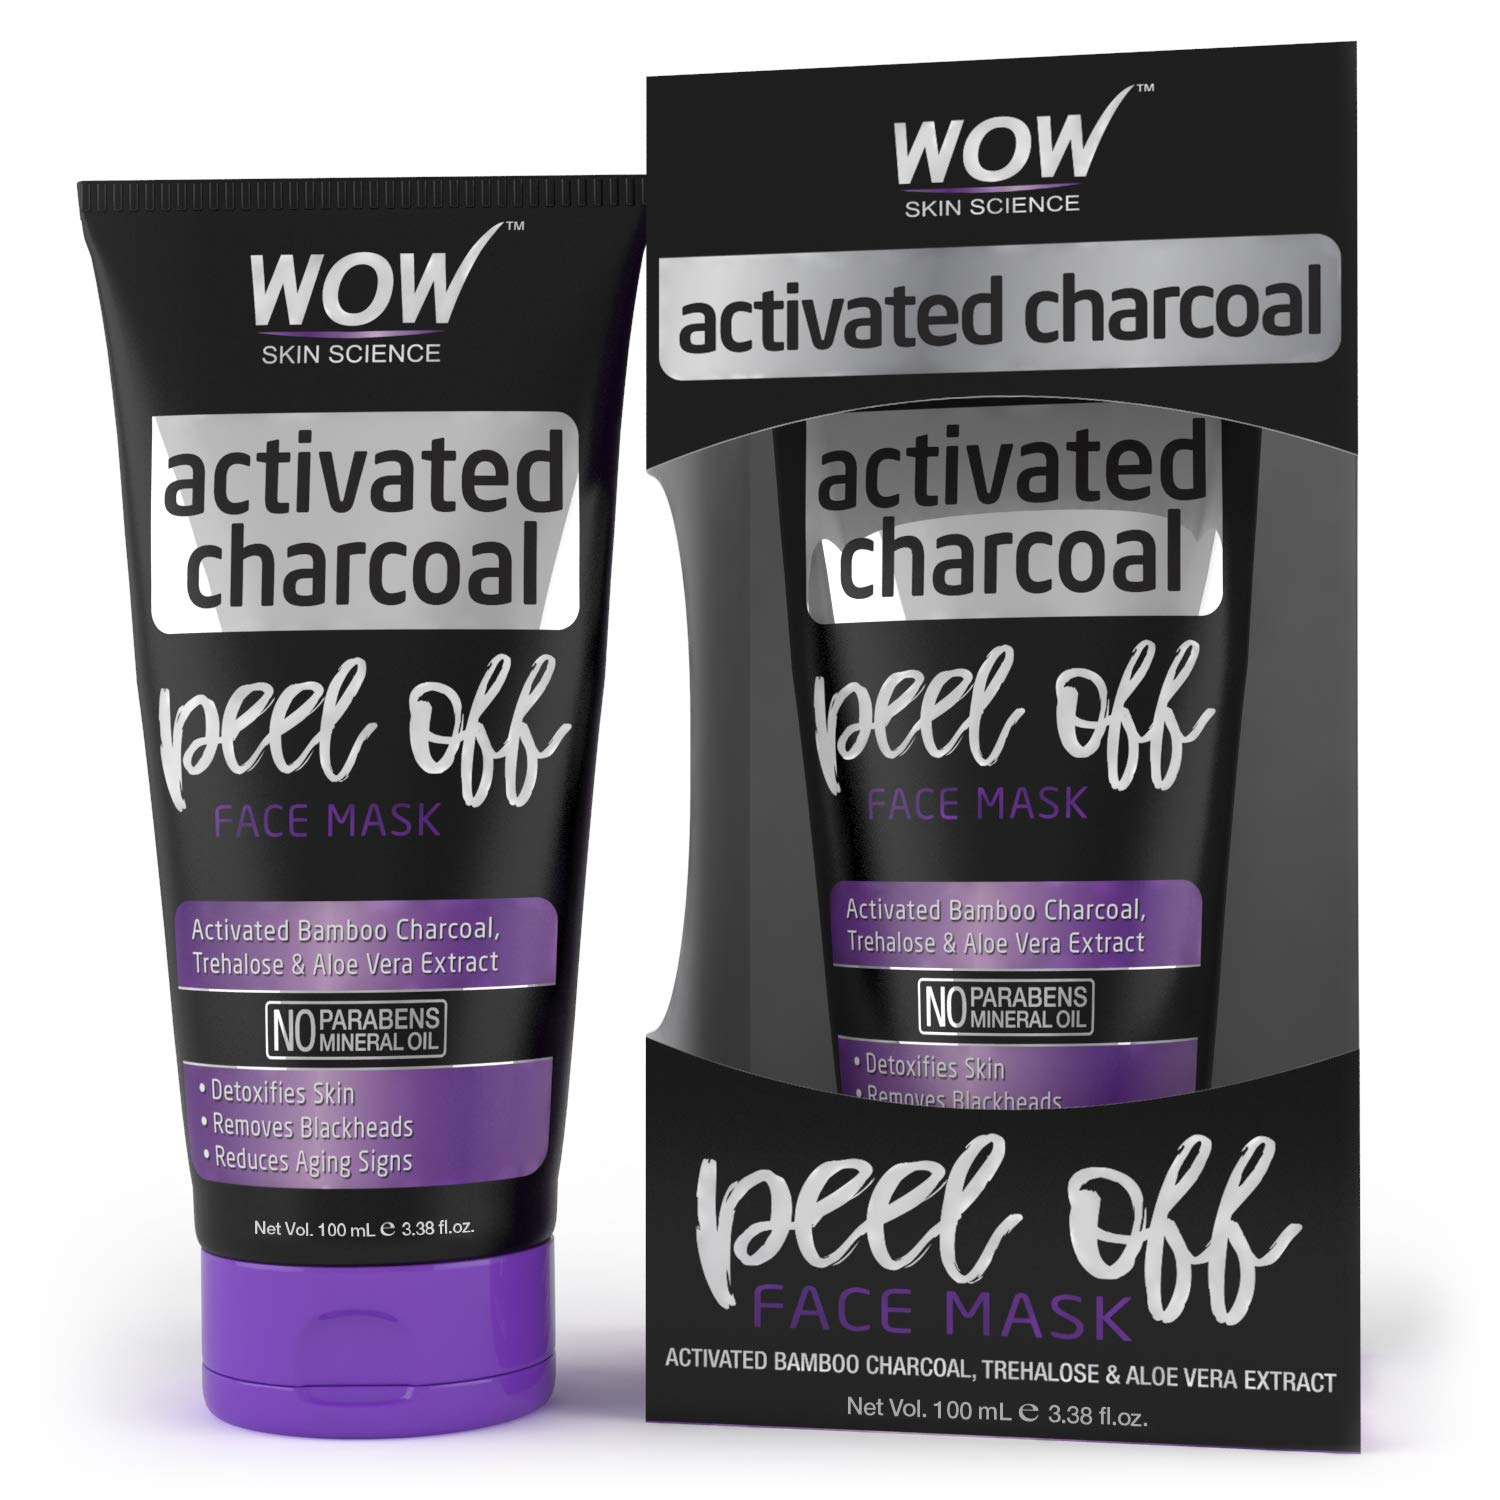 WOW Activated Charcoal Face Mask - Peel Off - No Parabens &